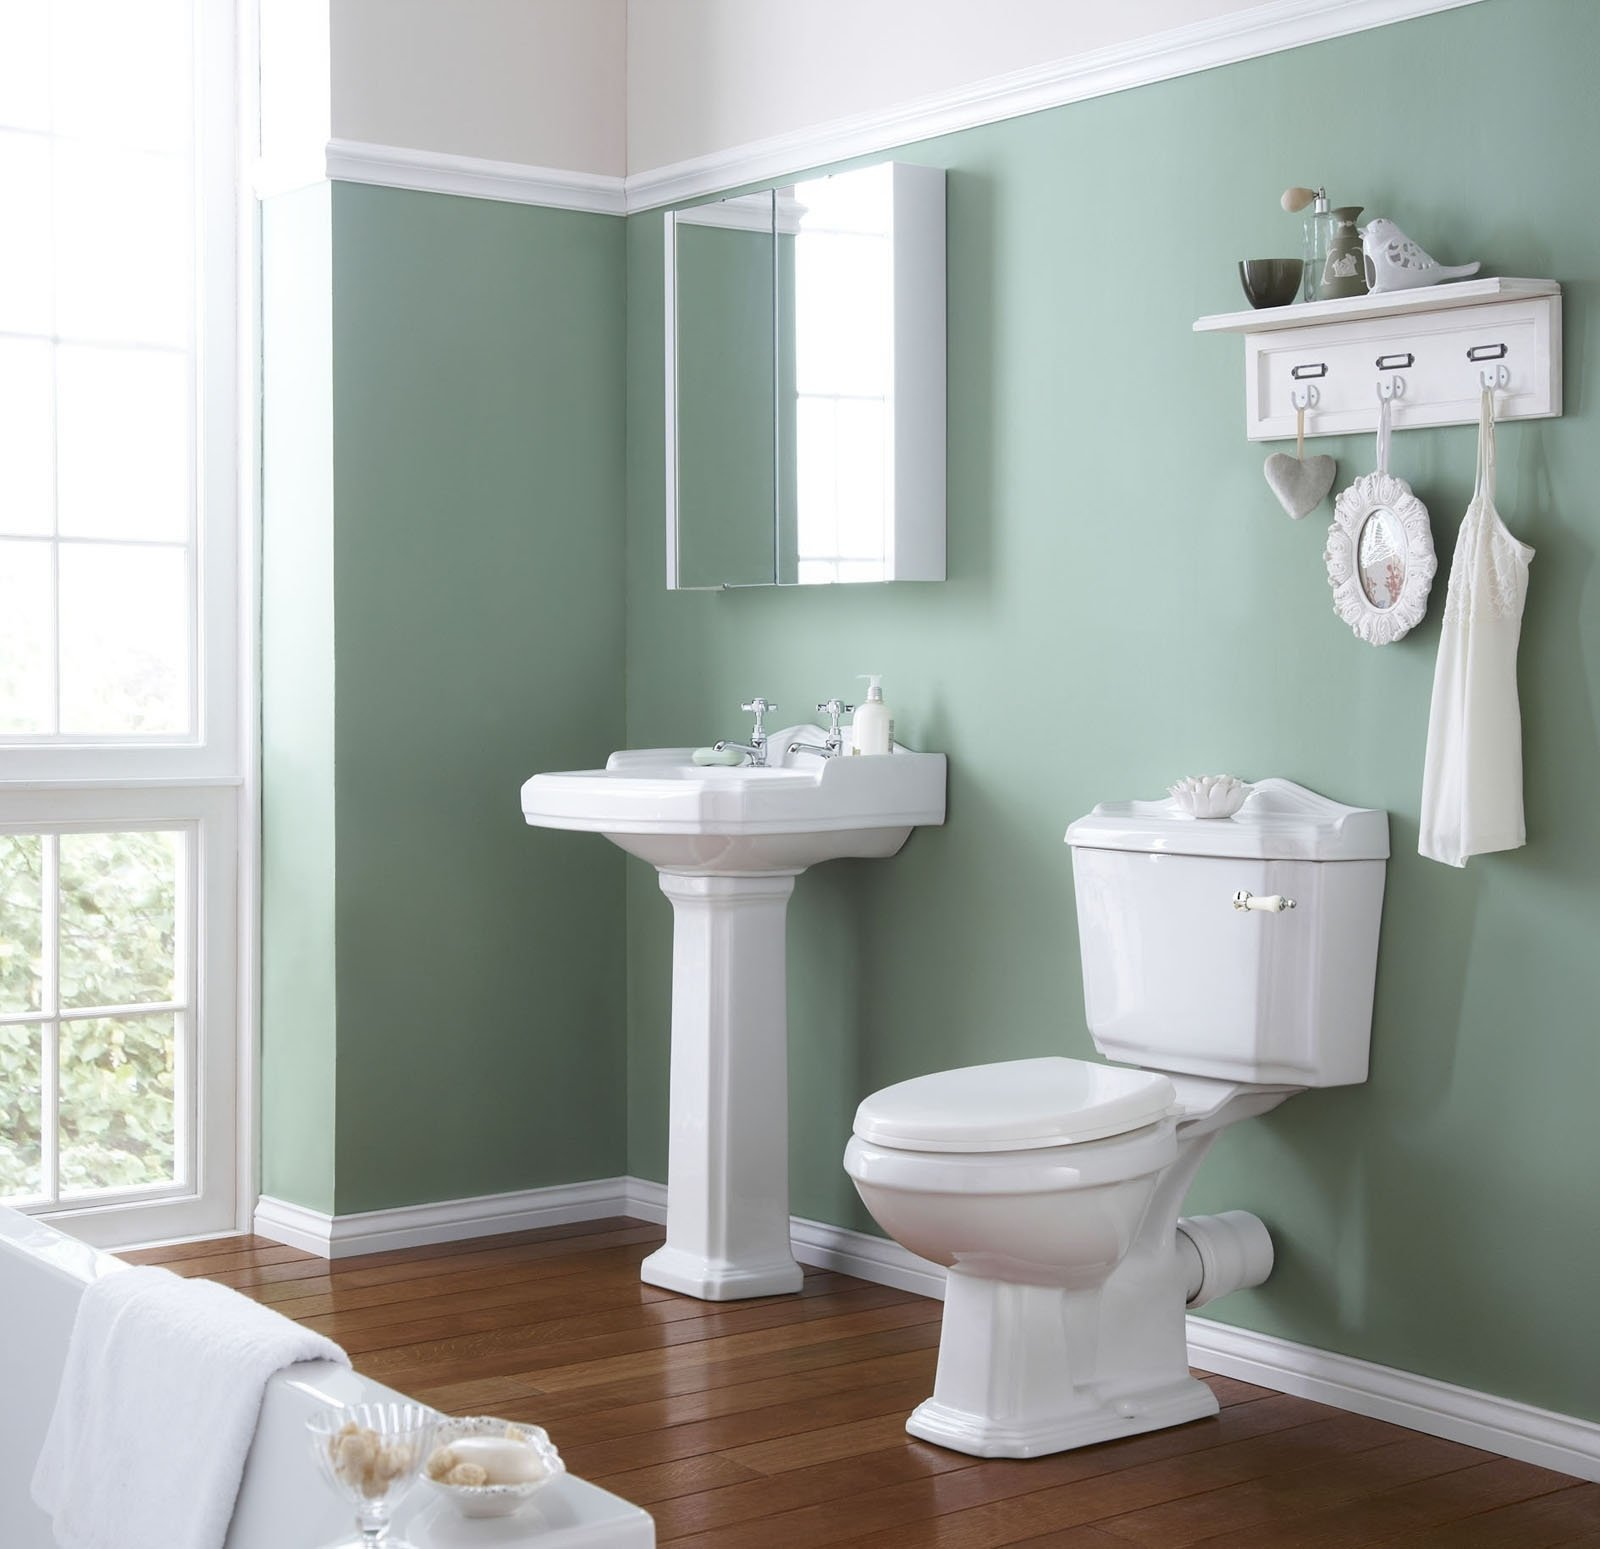 10 Pretty Paint Ideas For Small Bathrooms paint colors for master bathroom for bathrooms that are painted a 4 2021